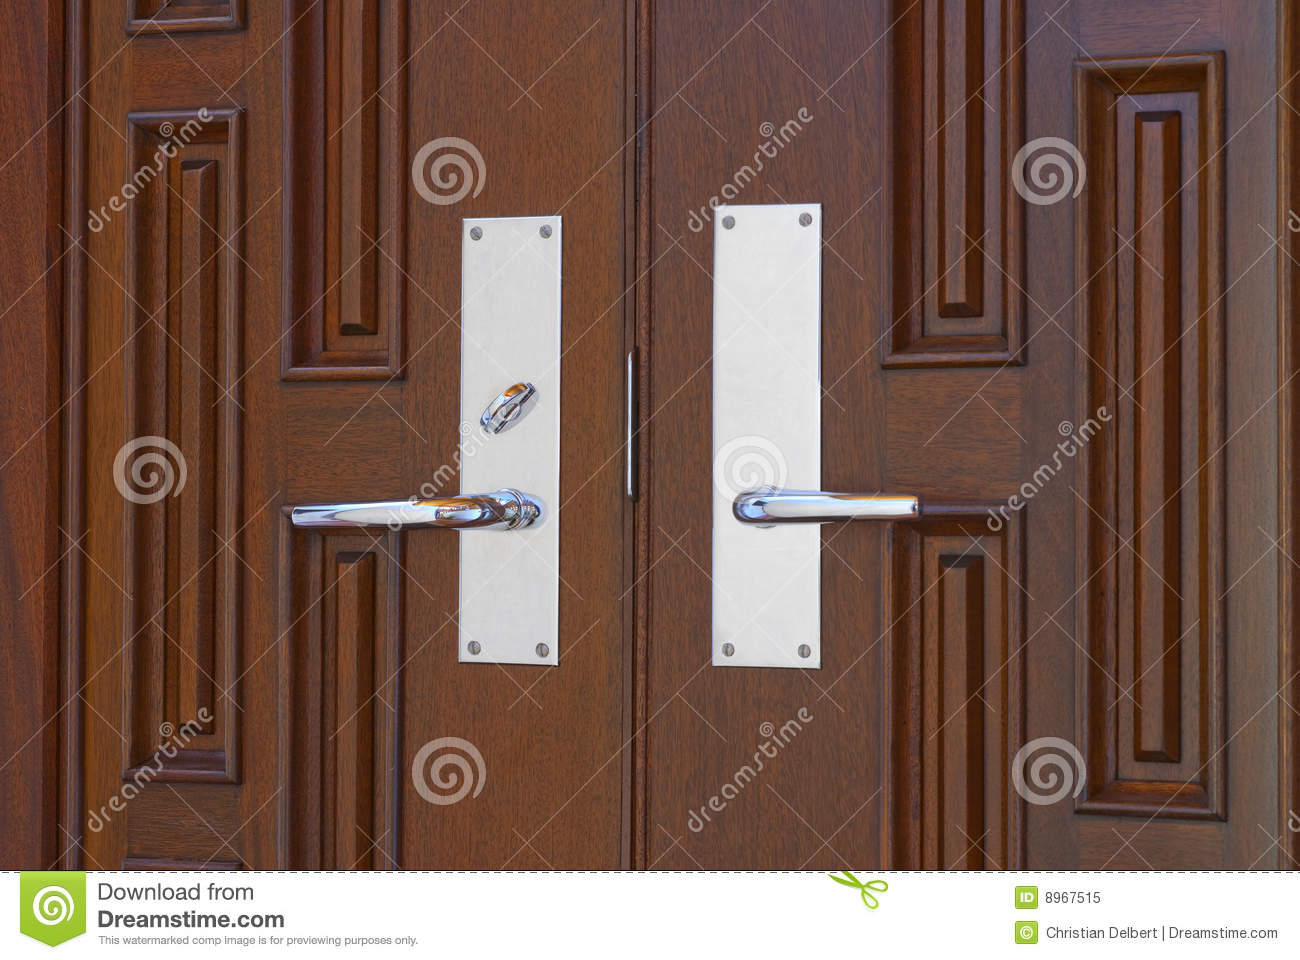 960 #83A328 Double Chrome Door Handles On Twin Mahogany Doors In Foyer. save image Hardware For Double Doors 46771300